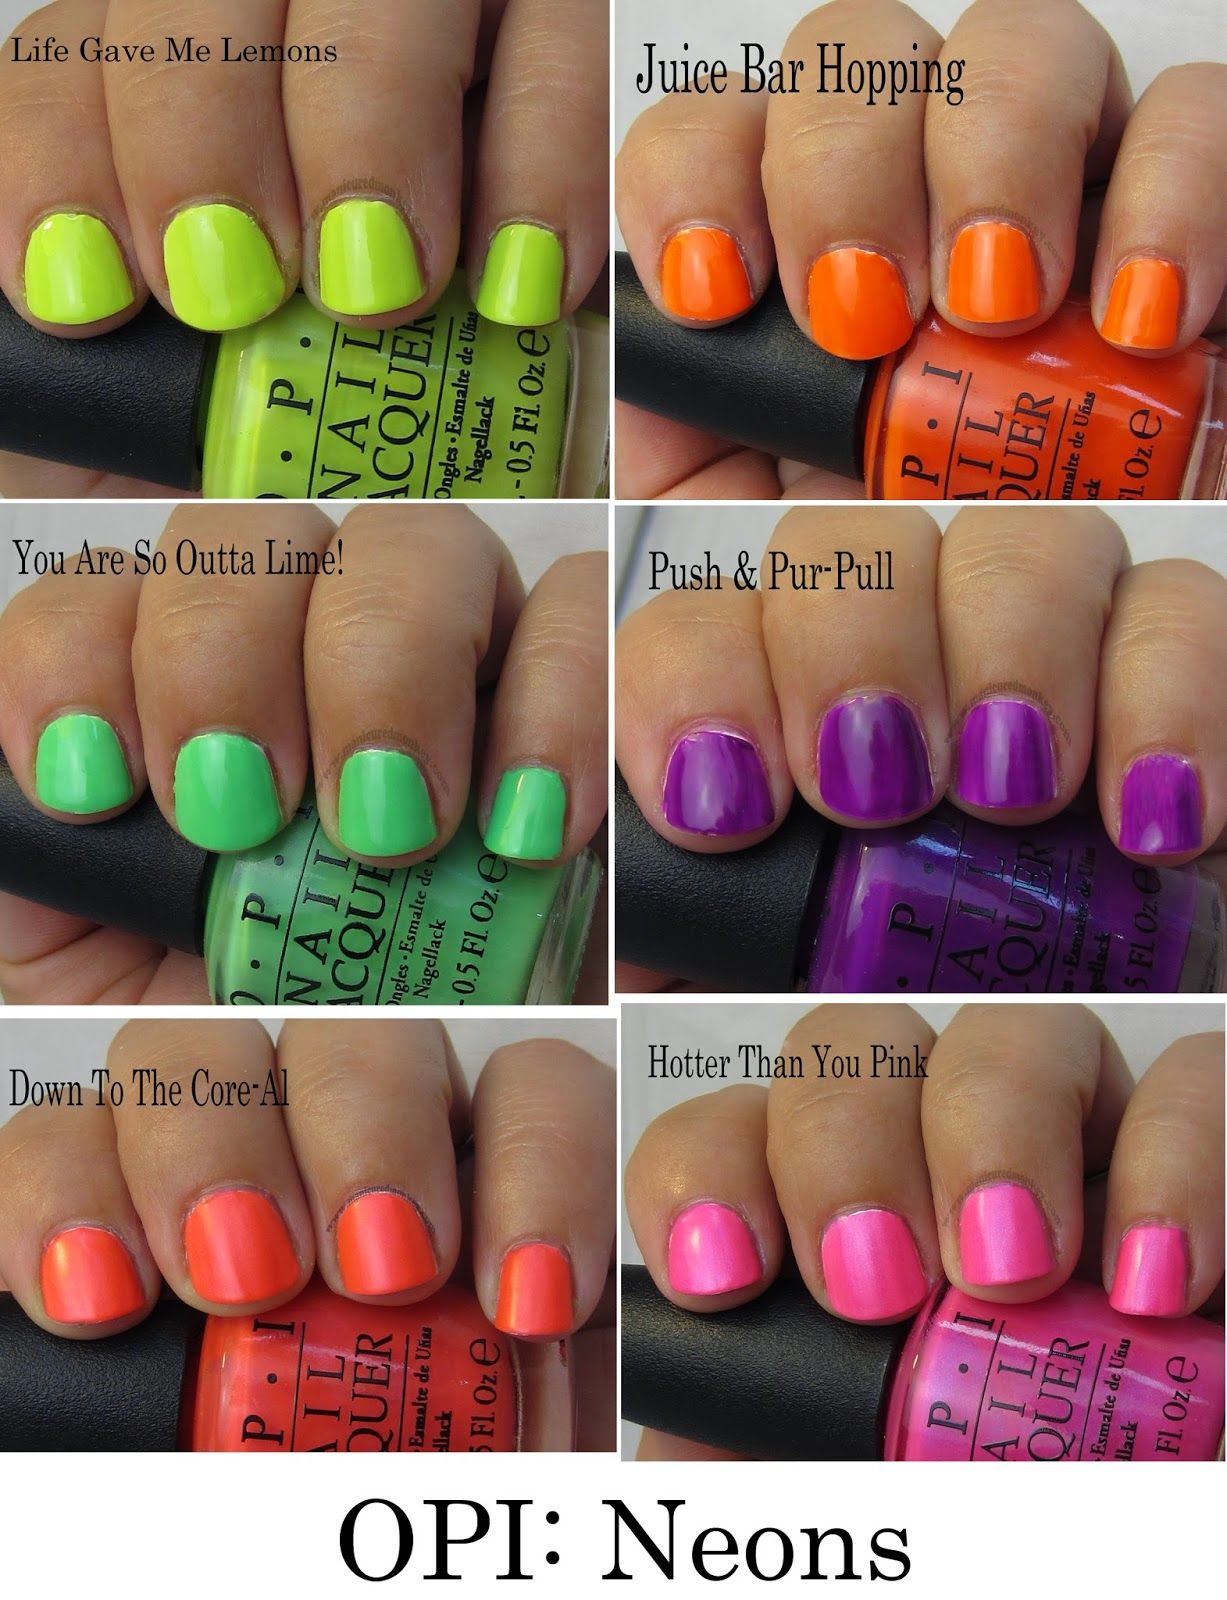 Opi Neons Swatches With Images Opi Nail Colors Neon Gel